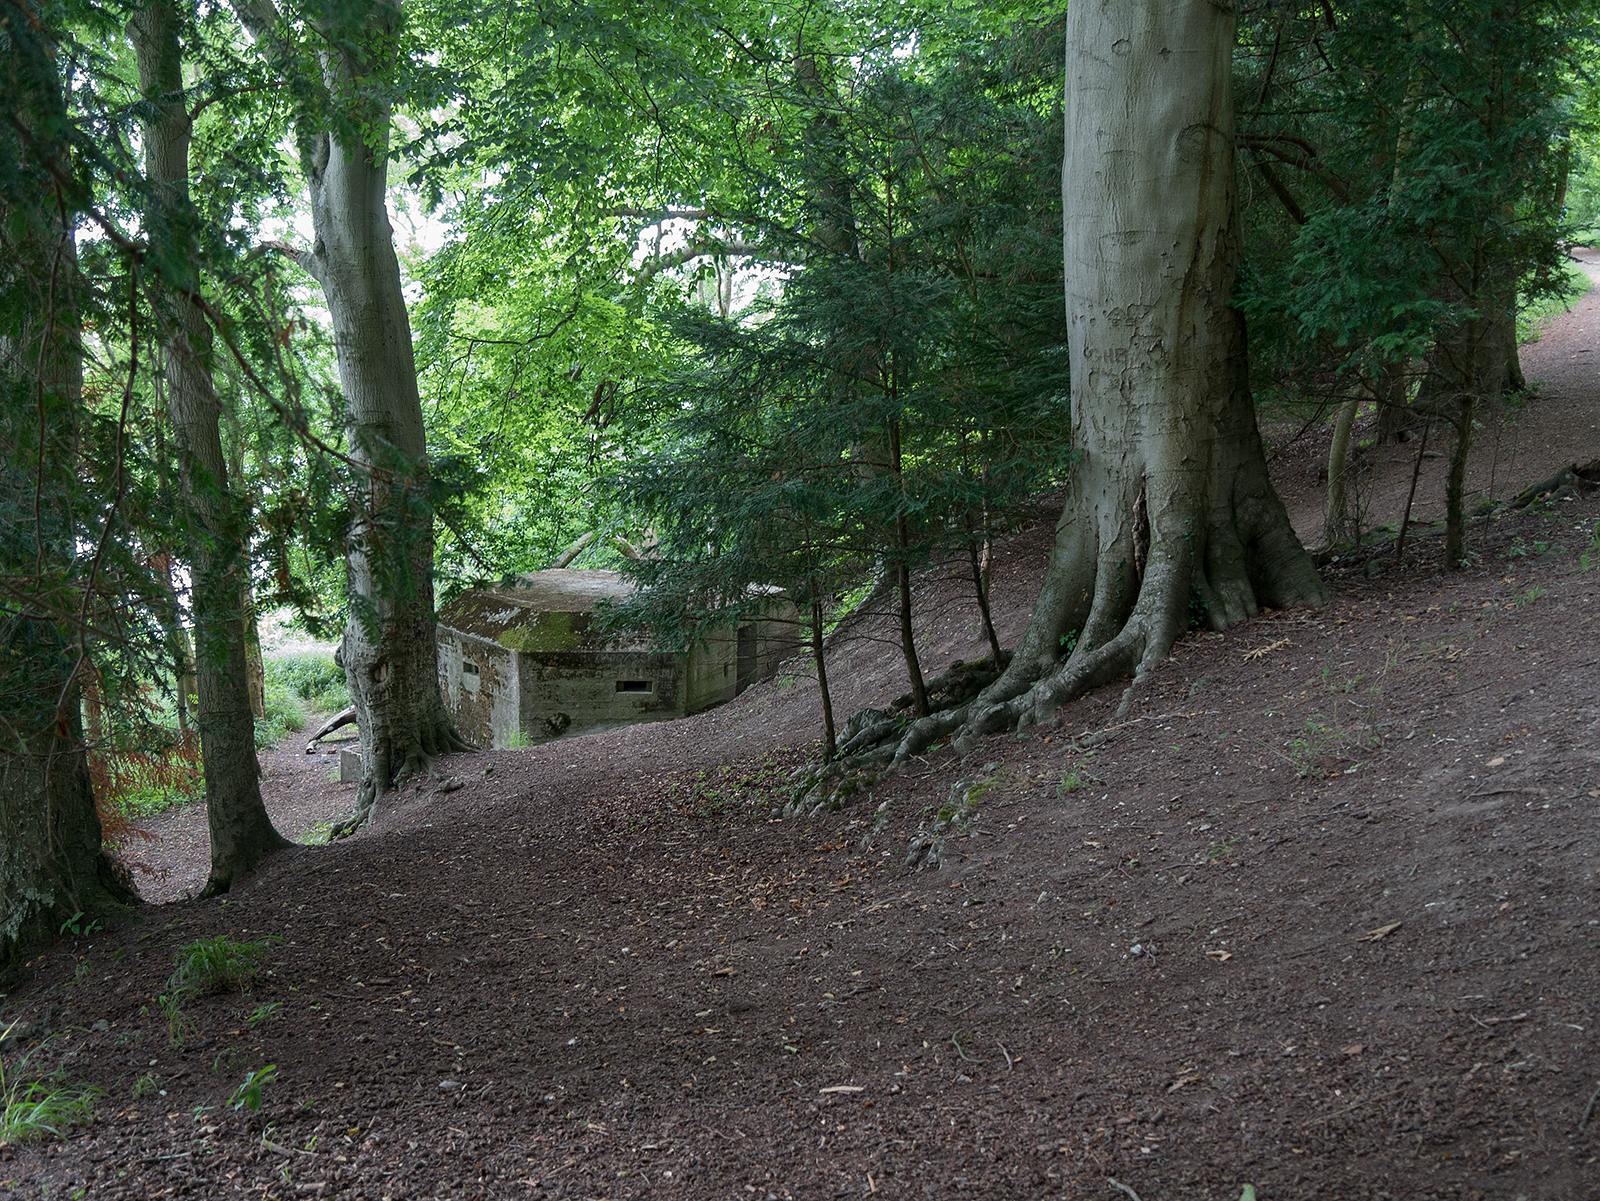 Emplacement in Hartslock Wood